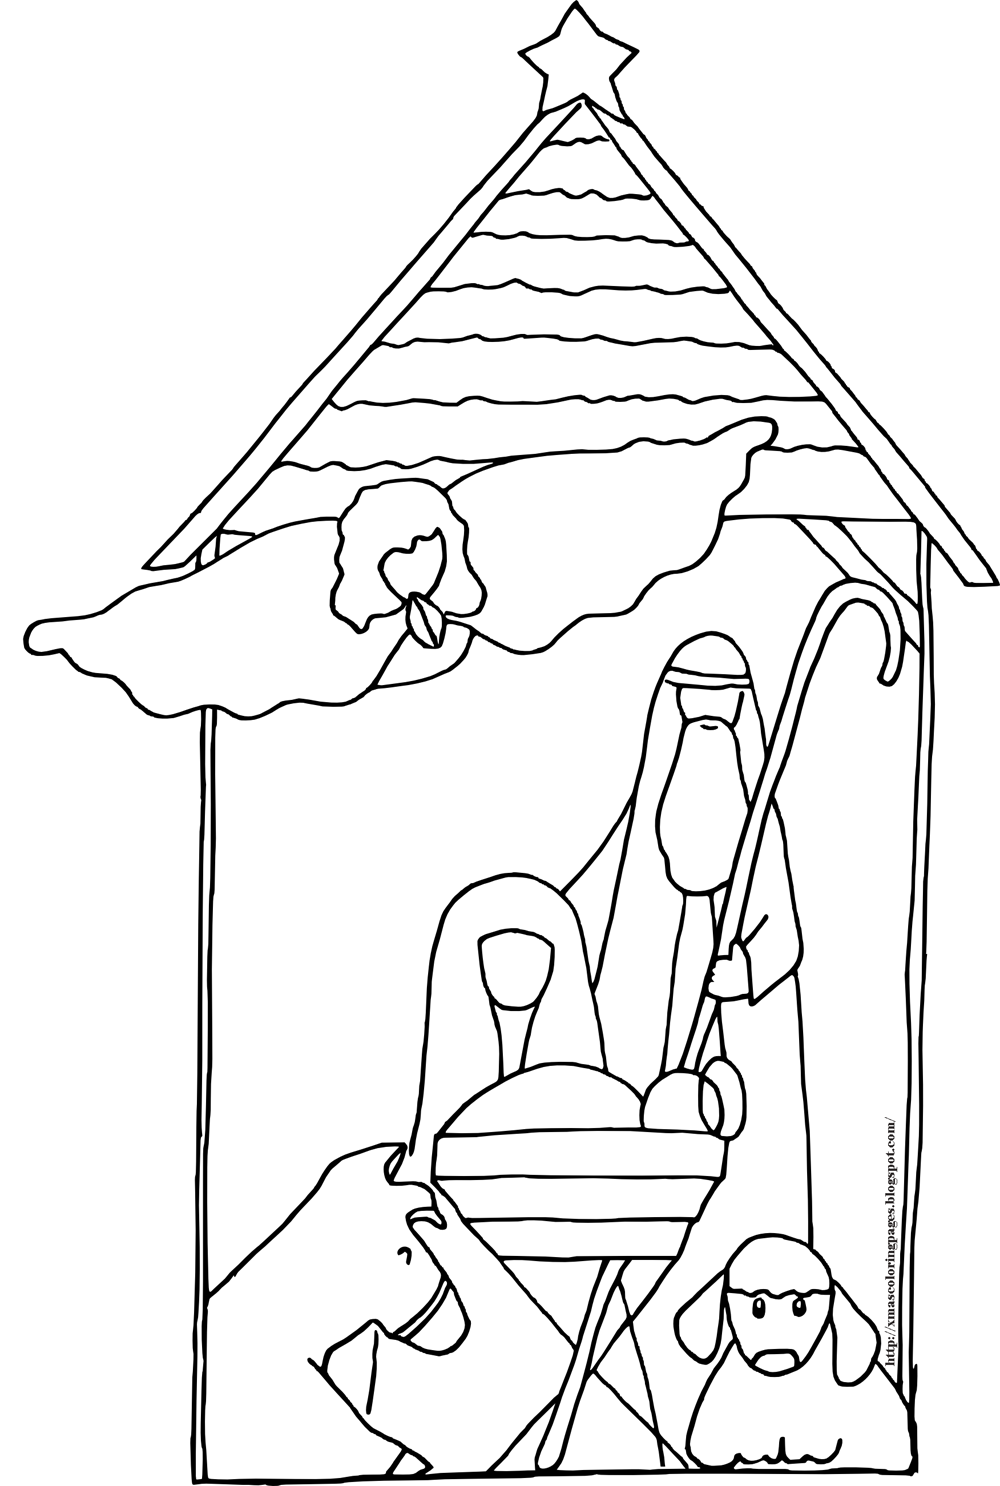 coloring pages baby jesus in manger baby jesus coloring pages best coloring pages for kids manger coloring jesus in baby pages